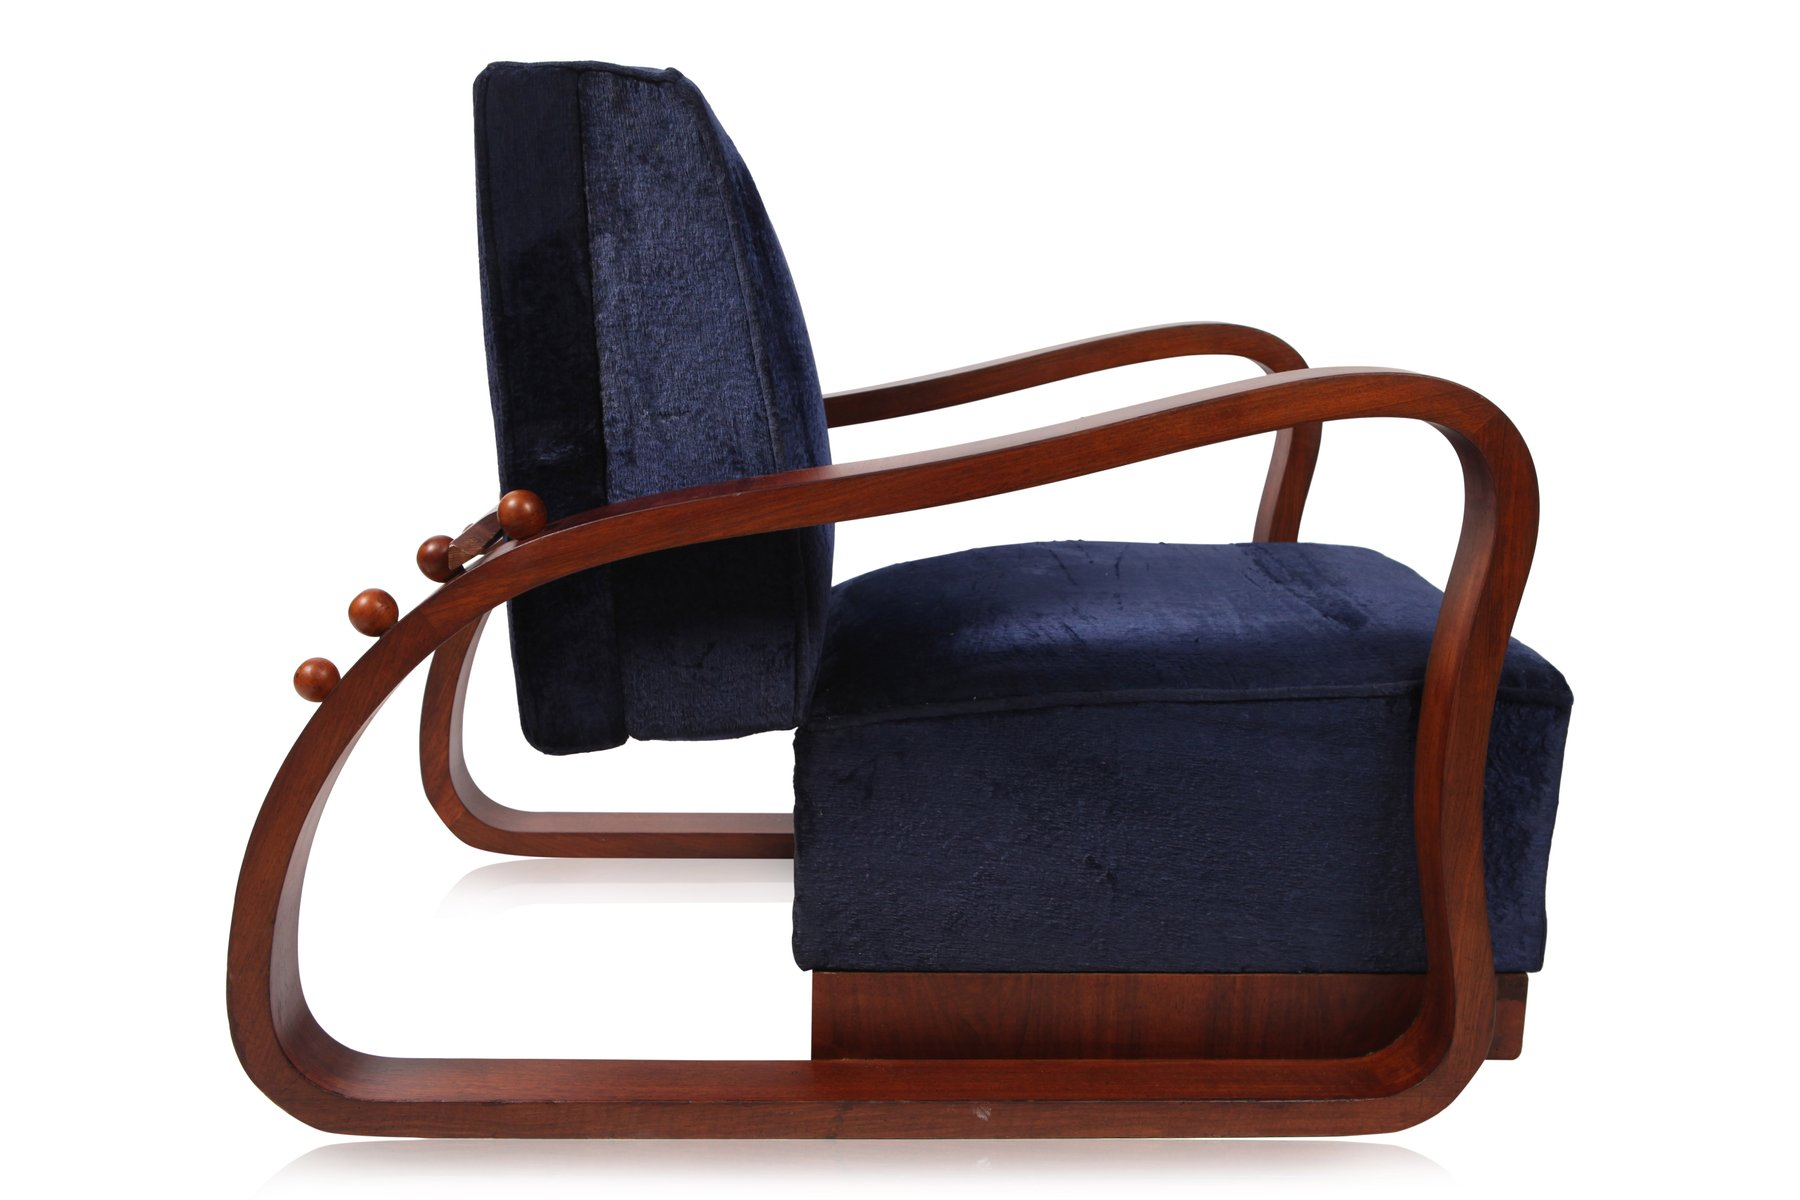 Dark Blue Velvet Lounge Chairs 1930s Set of 2 for sale at Pamono